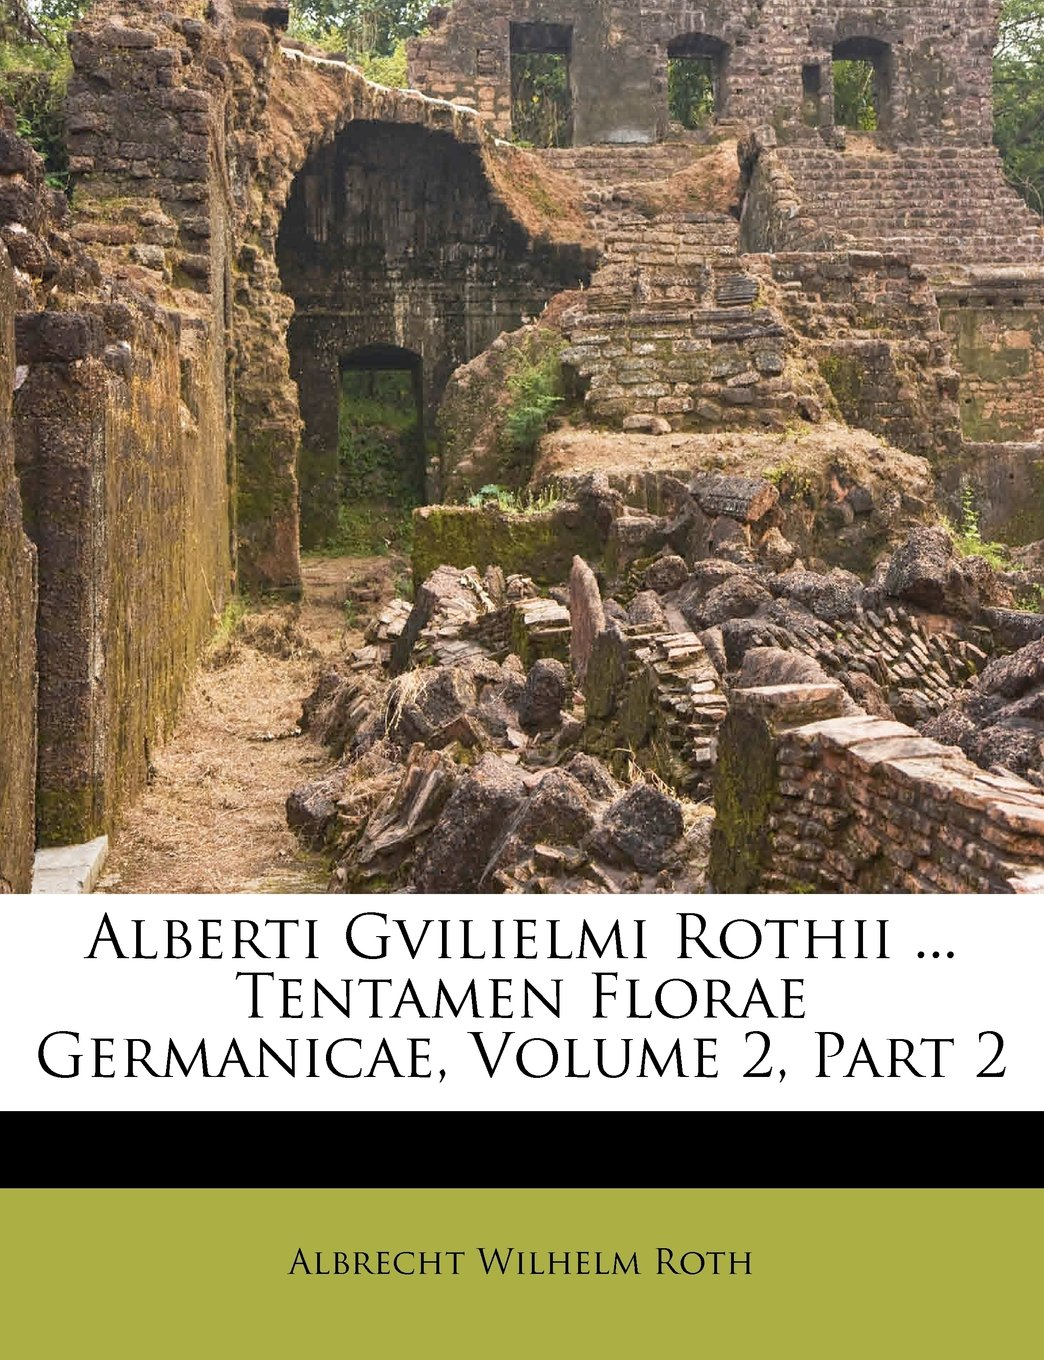 Alberti Gvilielmi Rothii ... Tentamen Florae Germanicae, Volume 2, Part 2 pdf epub